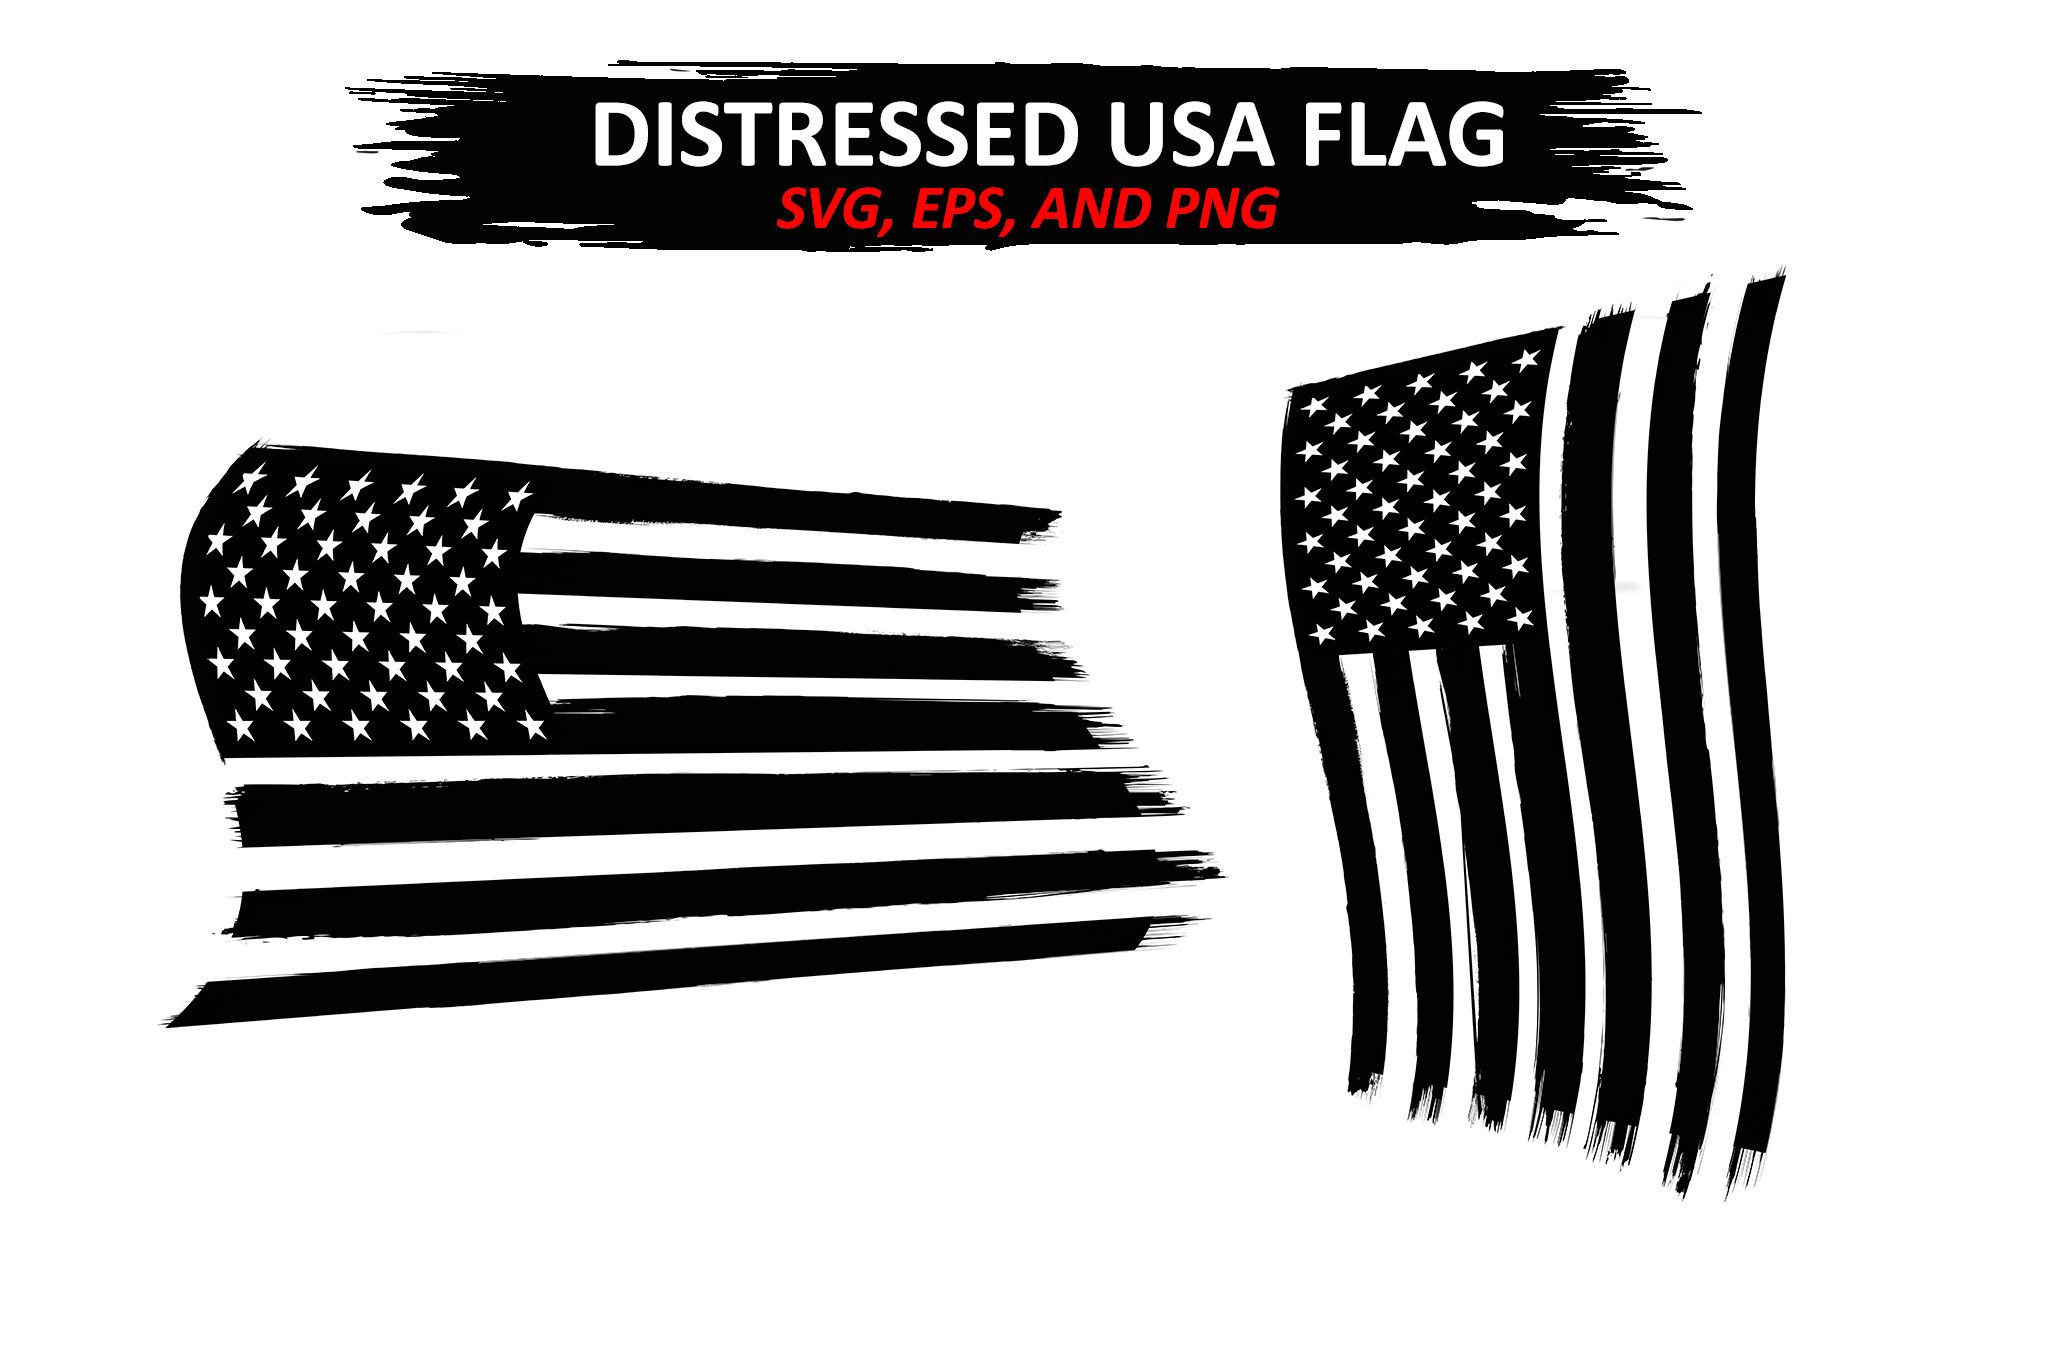 United State Flags Svg Distressed American Flags Etsy United States Flag Flag Flag Shop